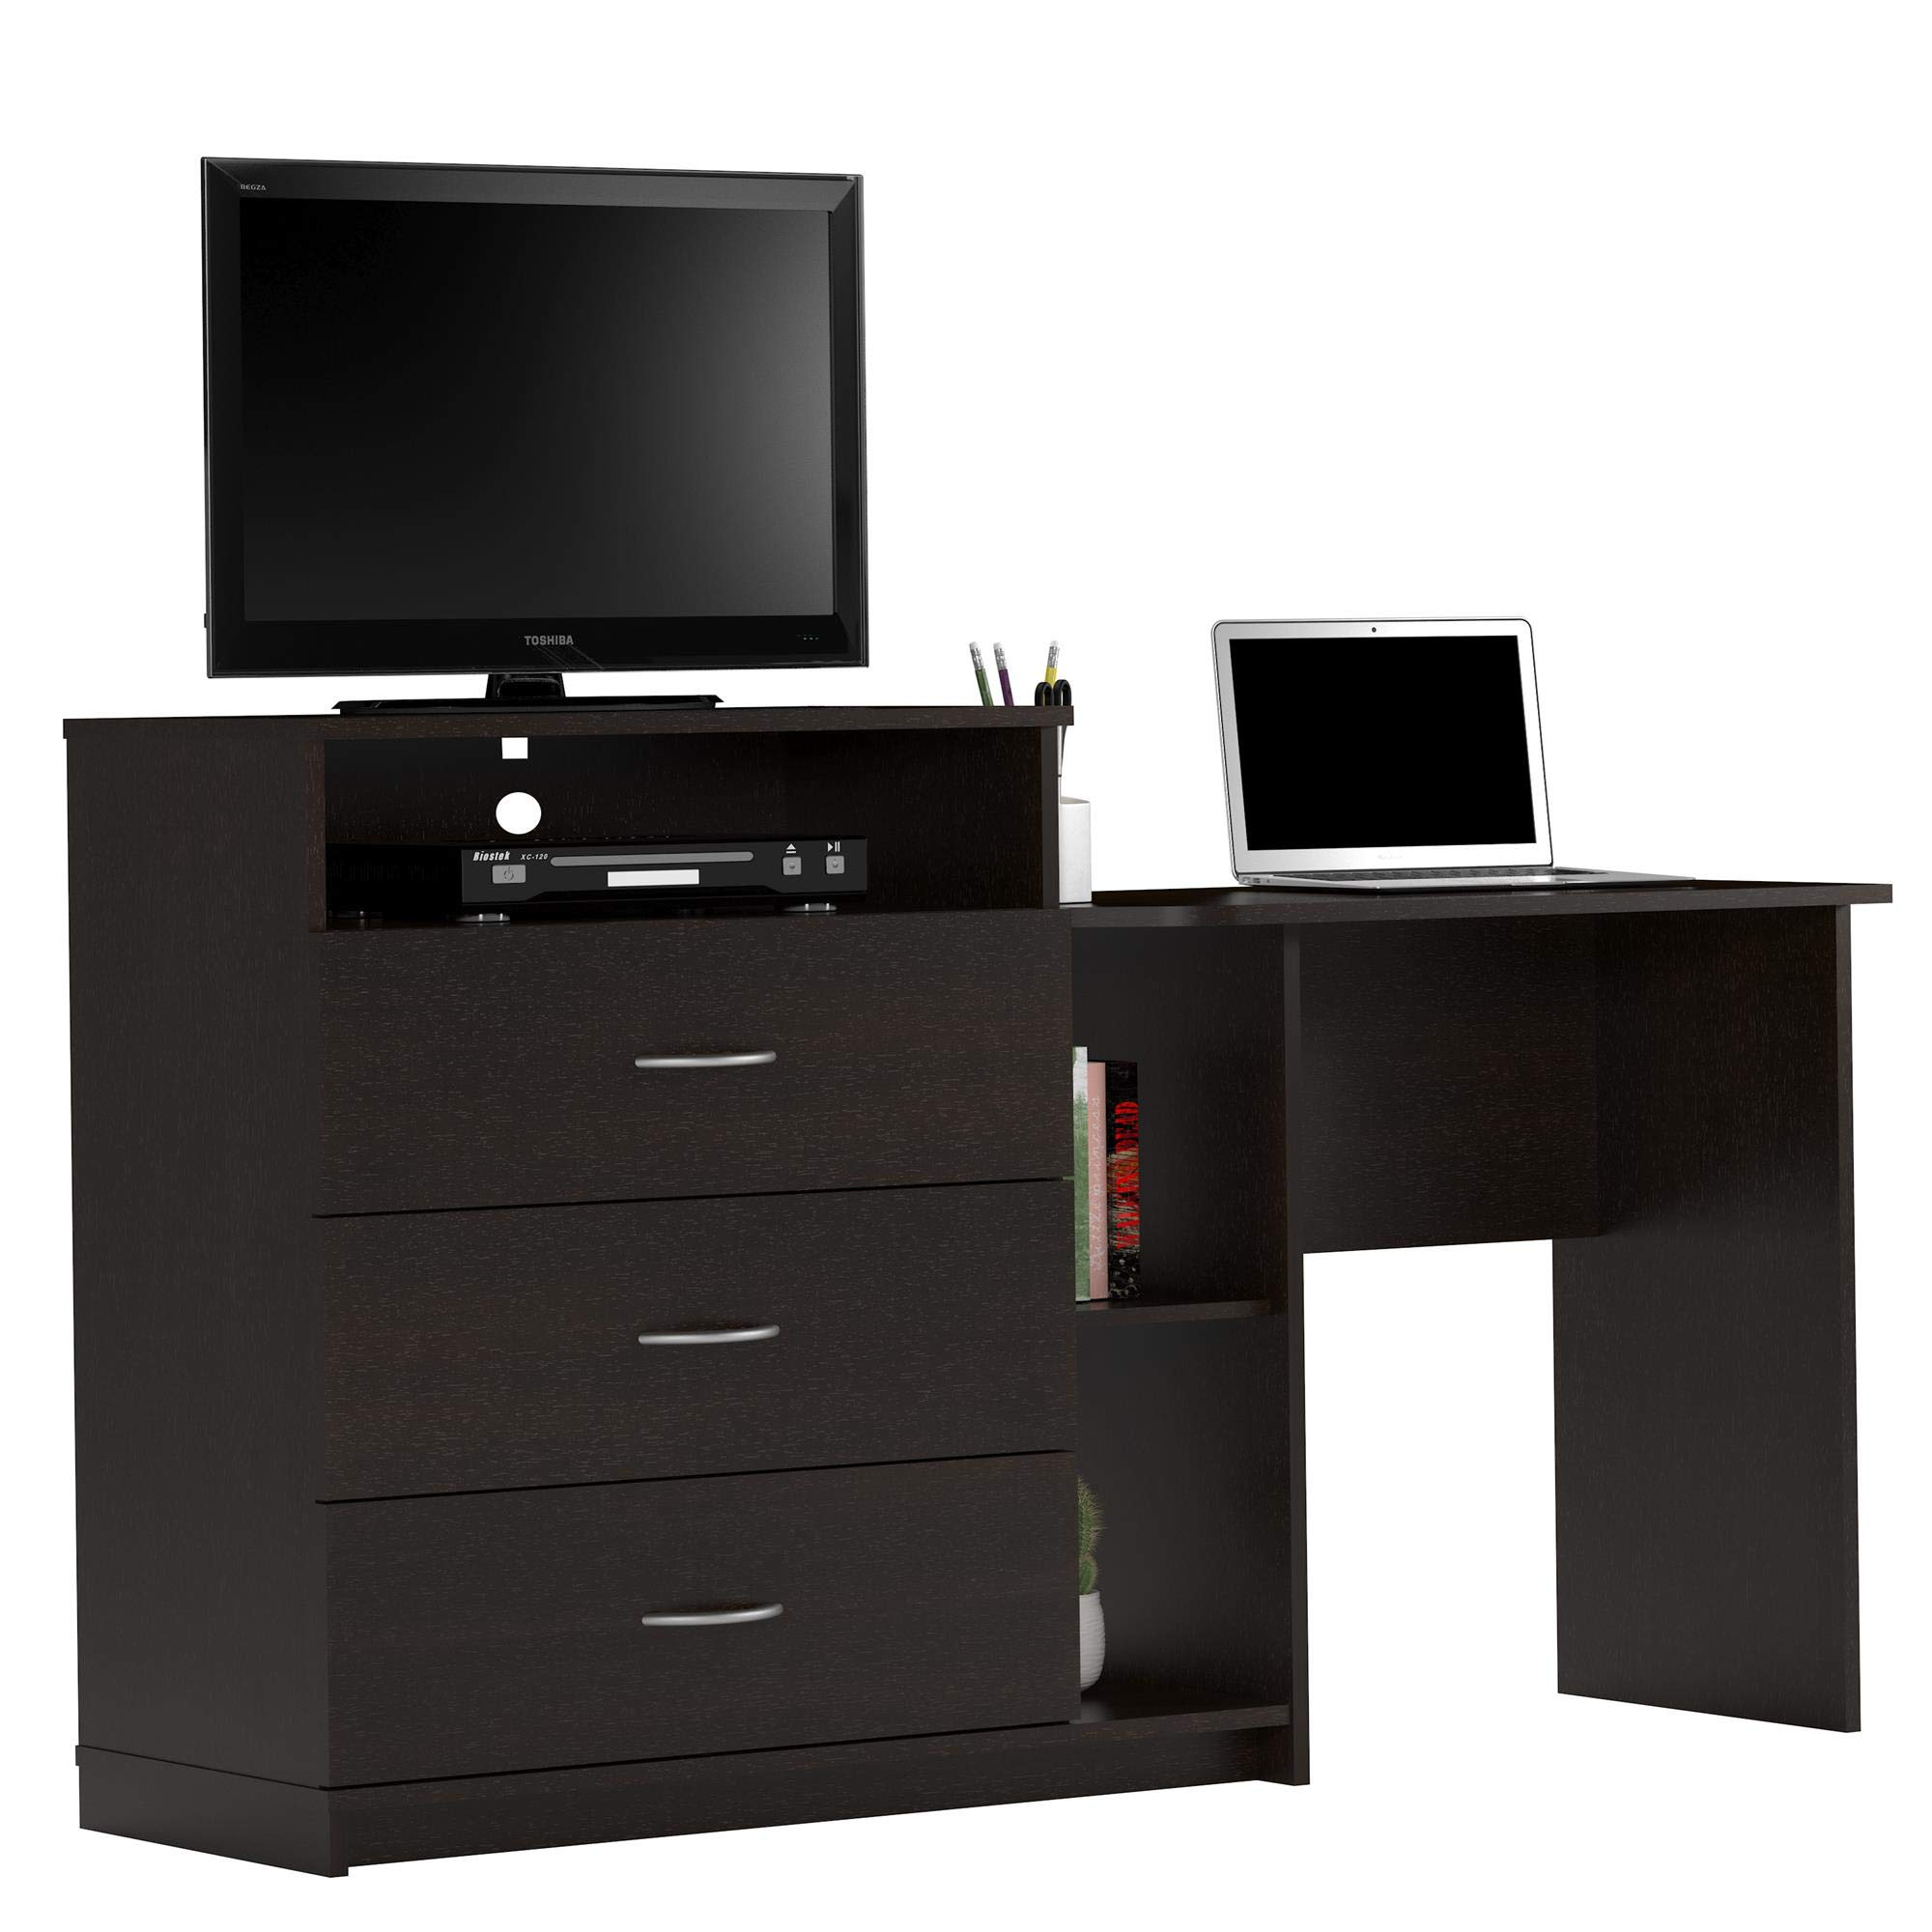 Ameriwood Home 9866012COM Rebel Media Dresser and Desk, Espresso